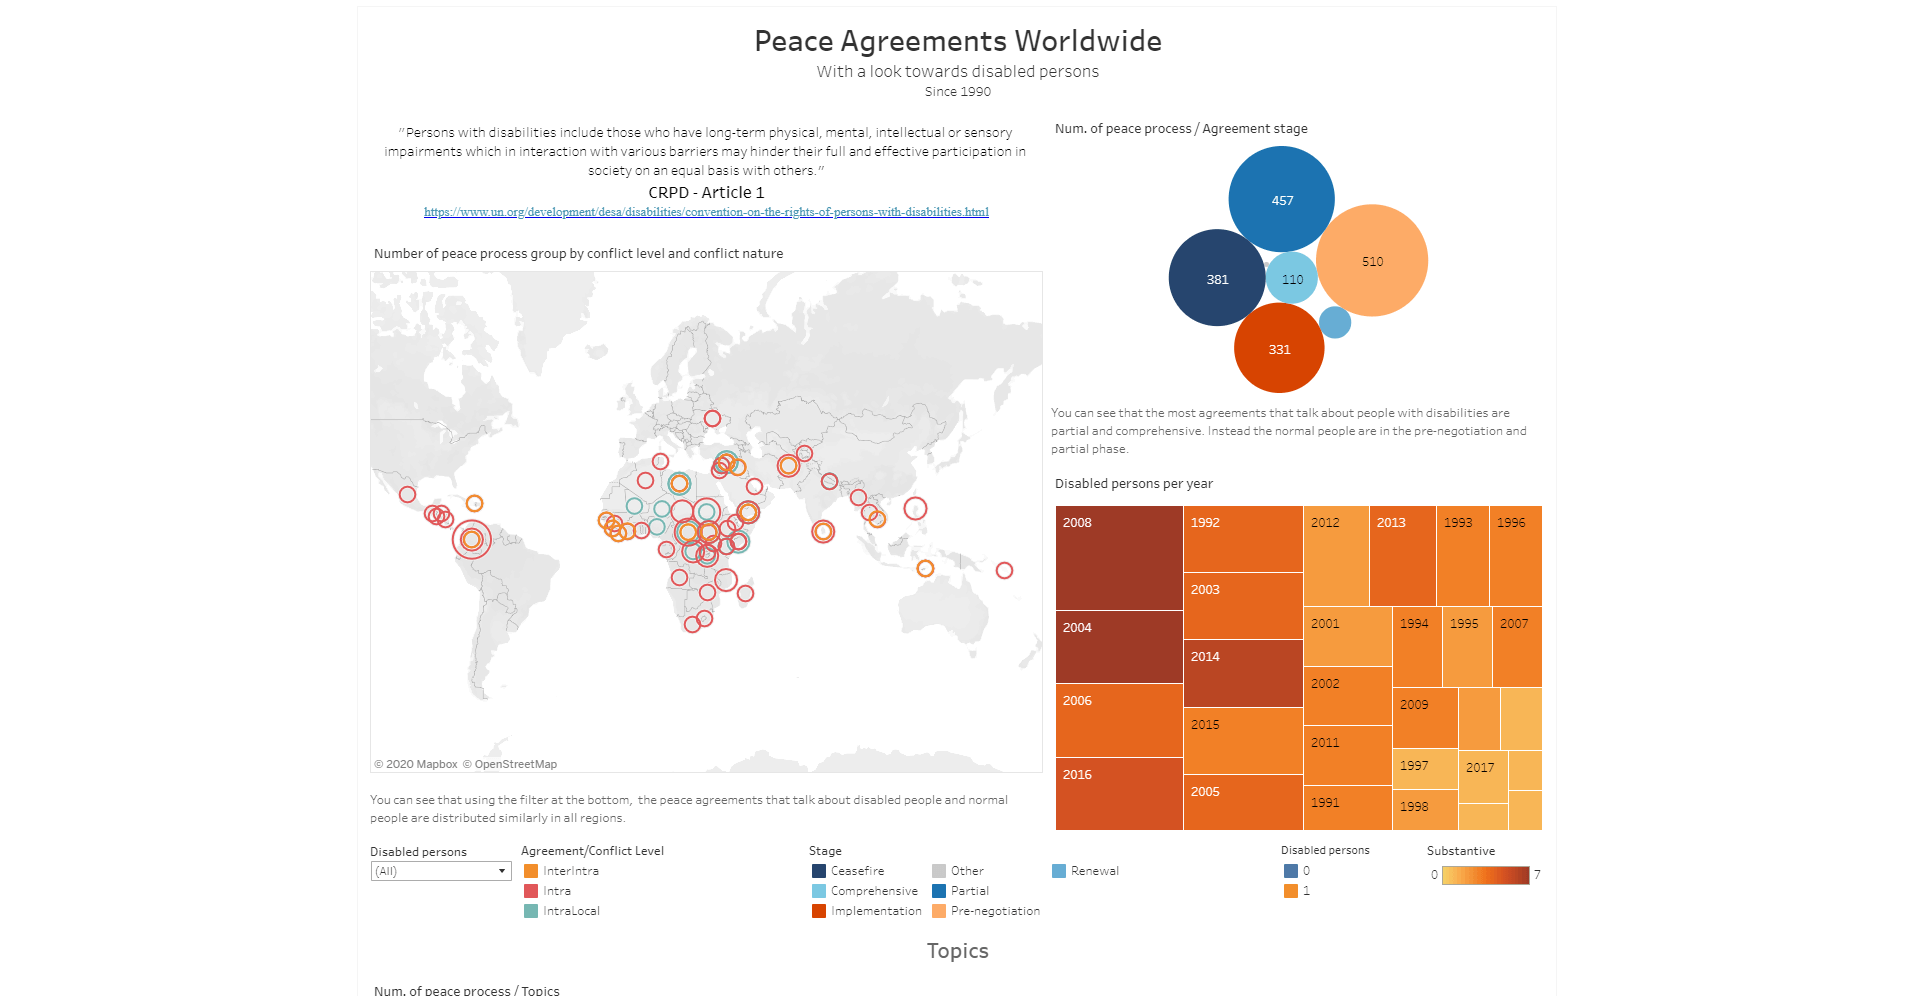 Peace Agreements Worldwide - With a look towards disabled persons (Since 1990)